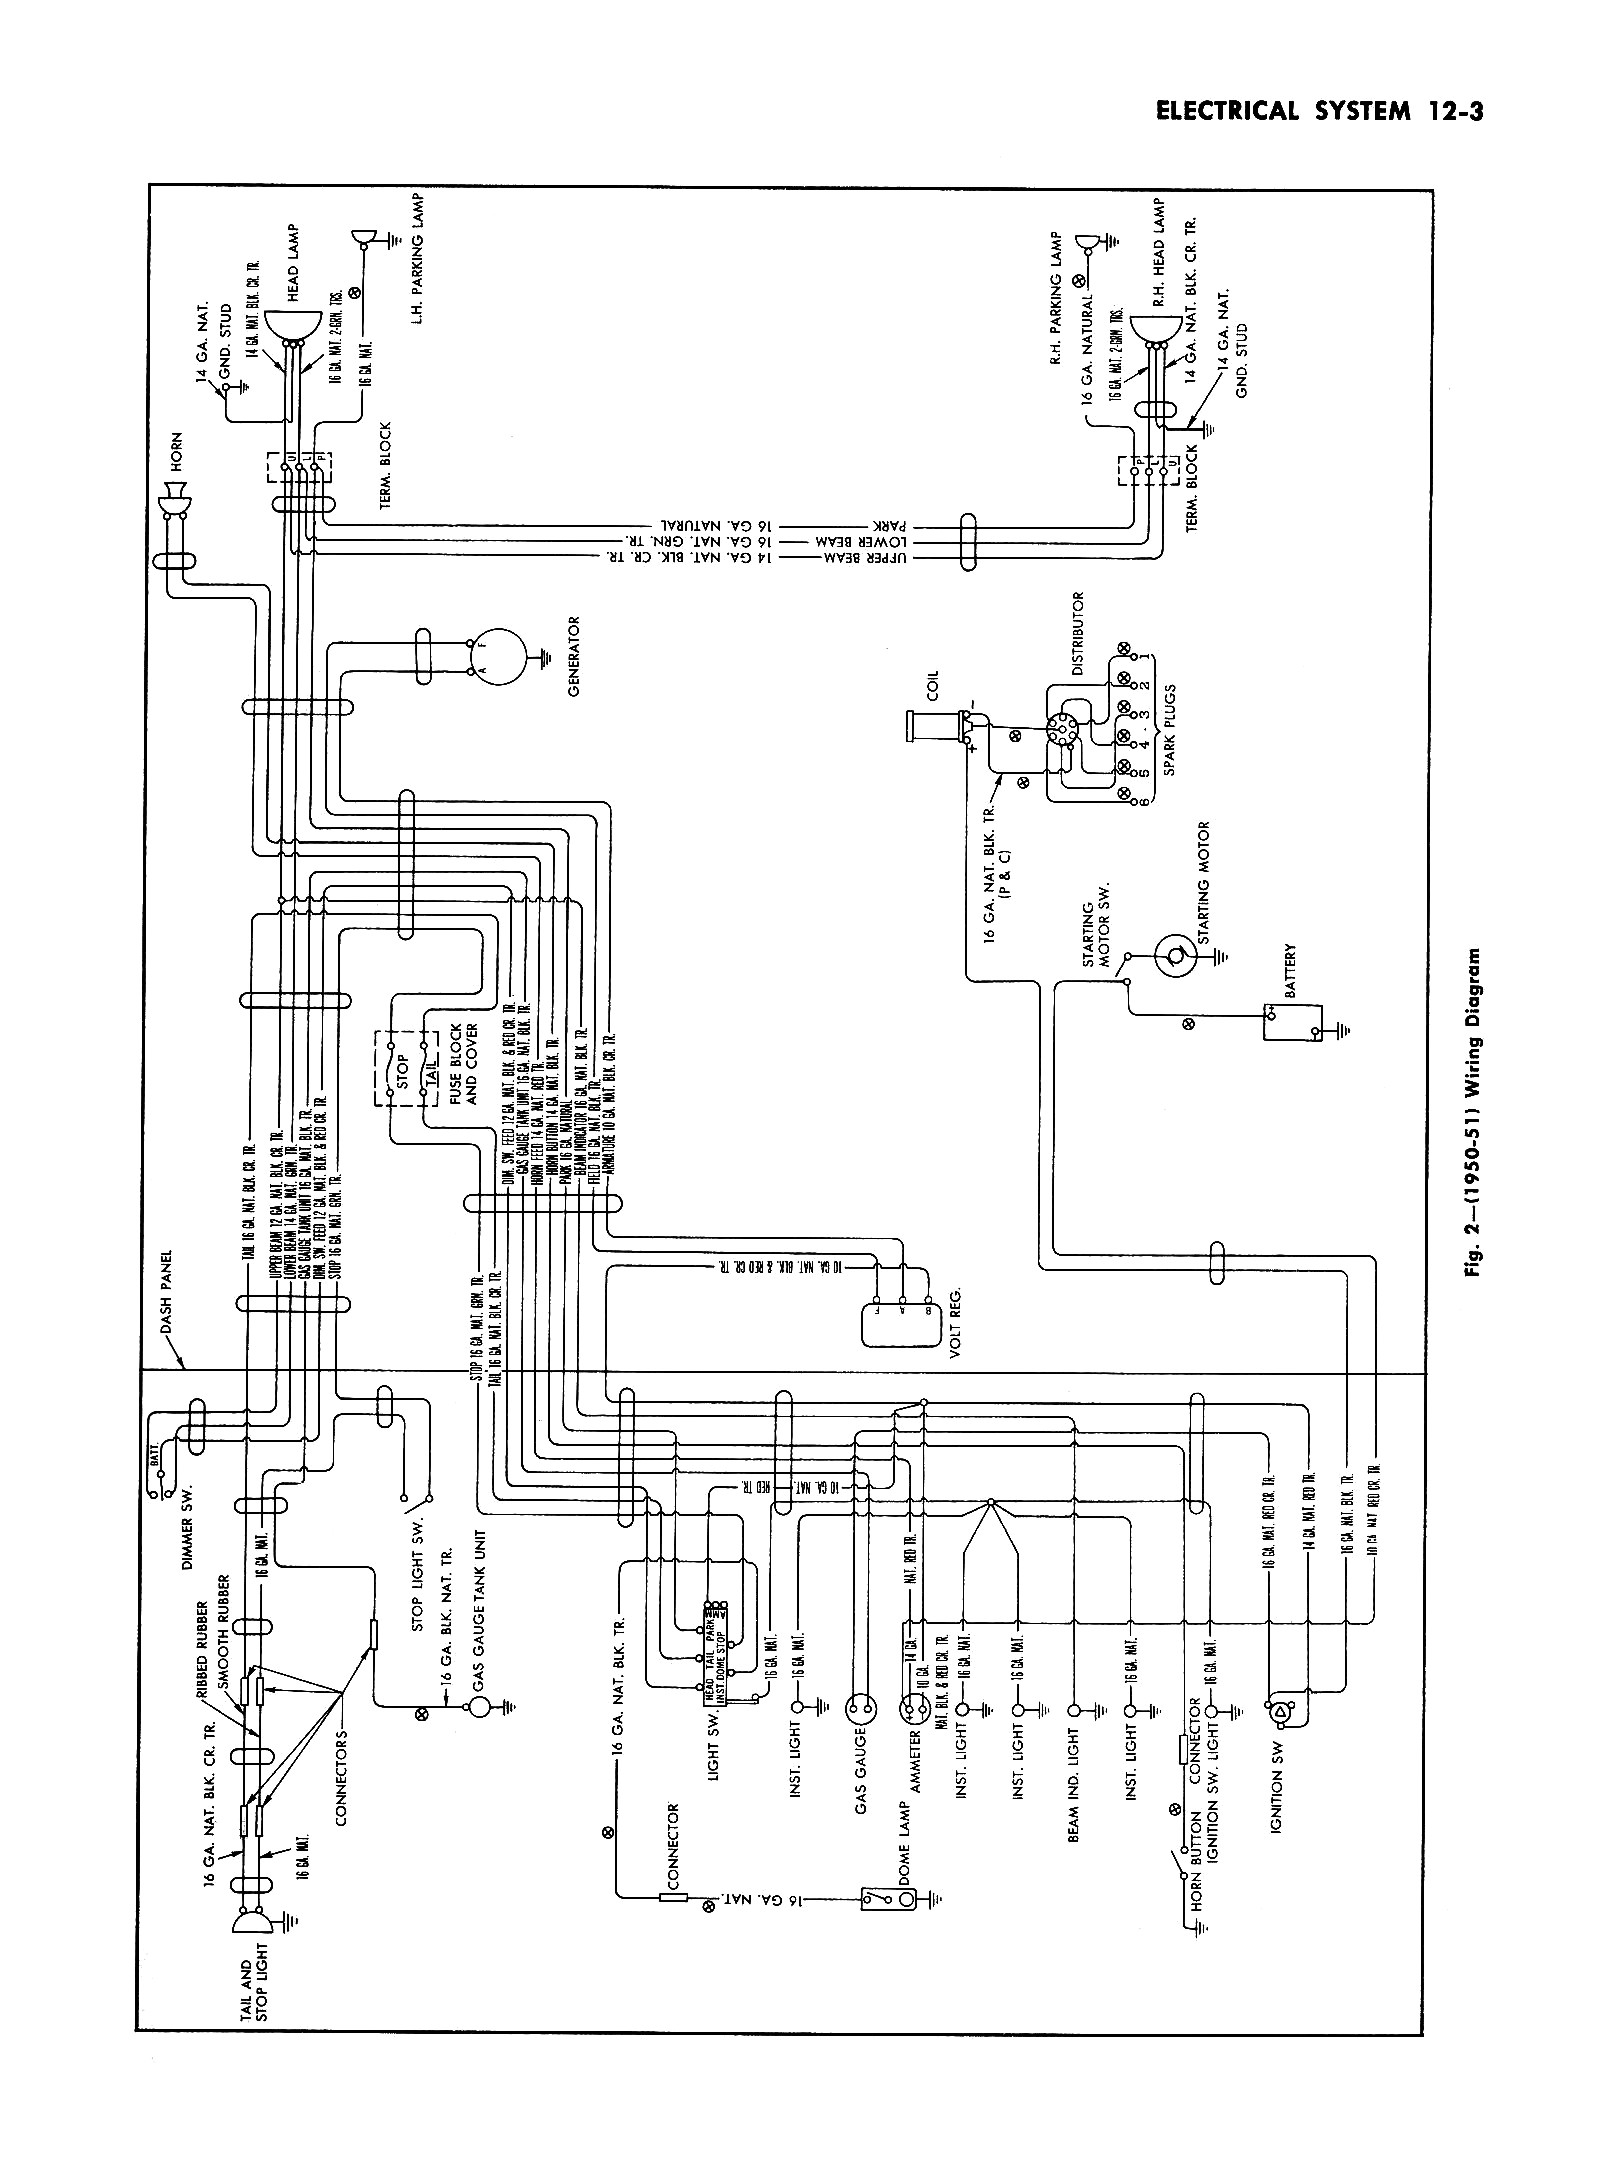 50car1 chevy oldcarmanualproject com electrical wiring im 1954 plymouth belvedere wiring diagram at eliteediting.co